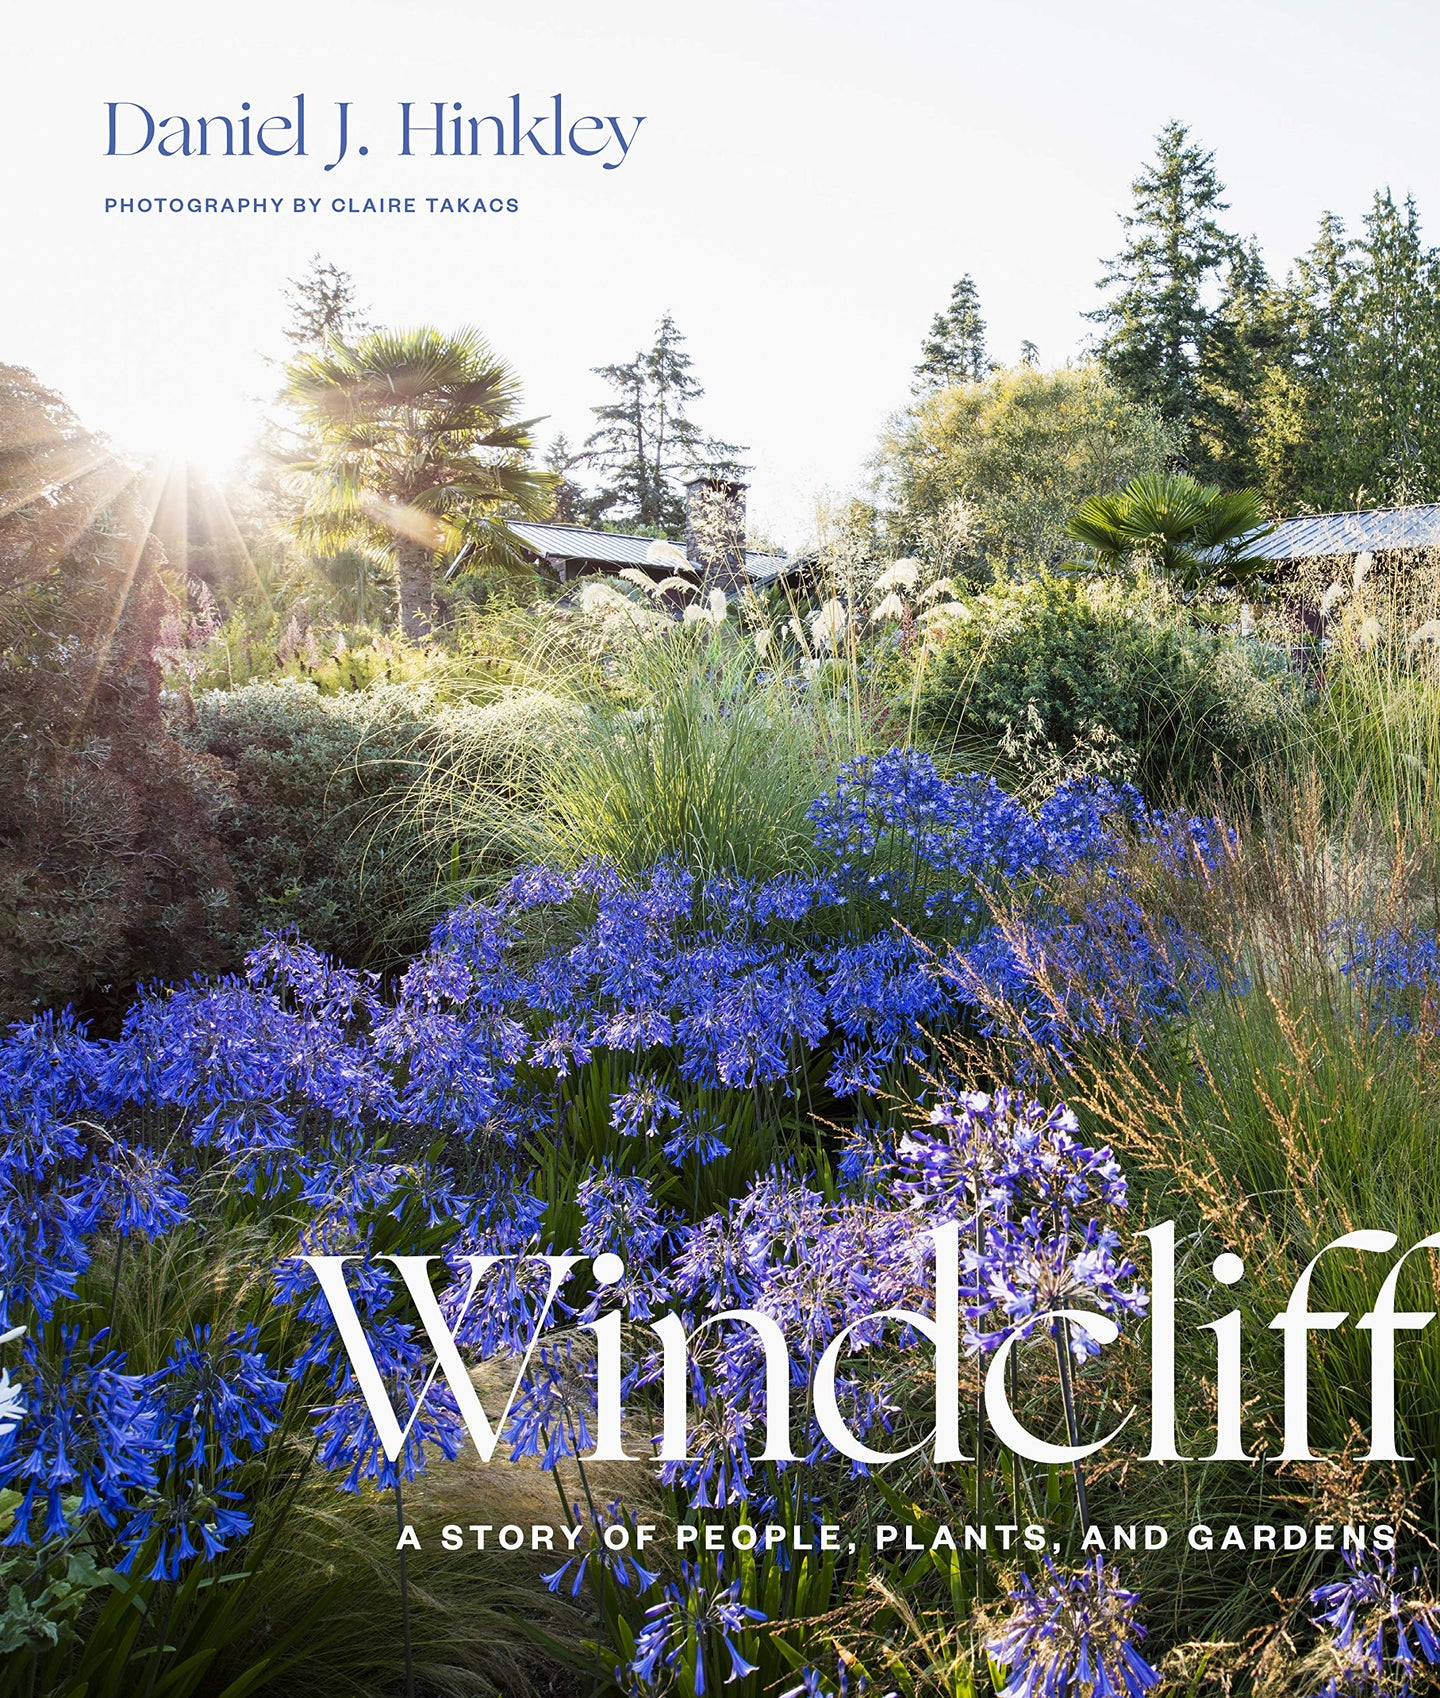 Windcliff: A Story of People, Plants, and Gardens